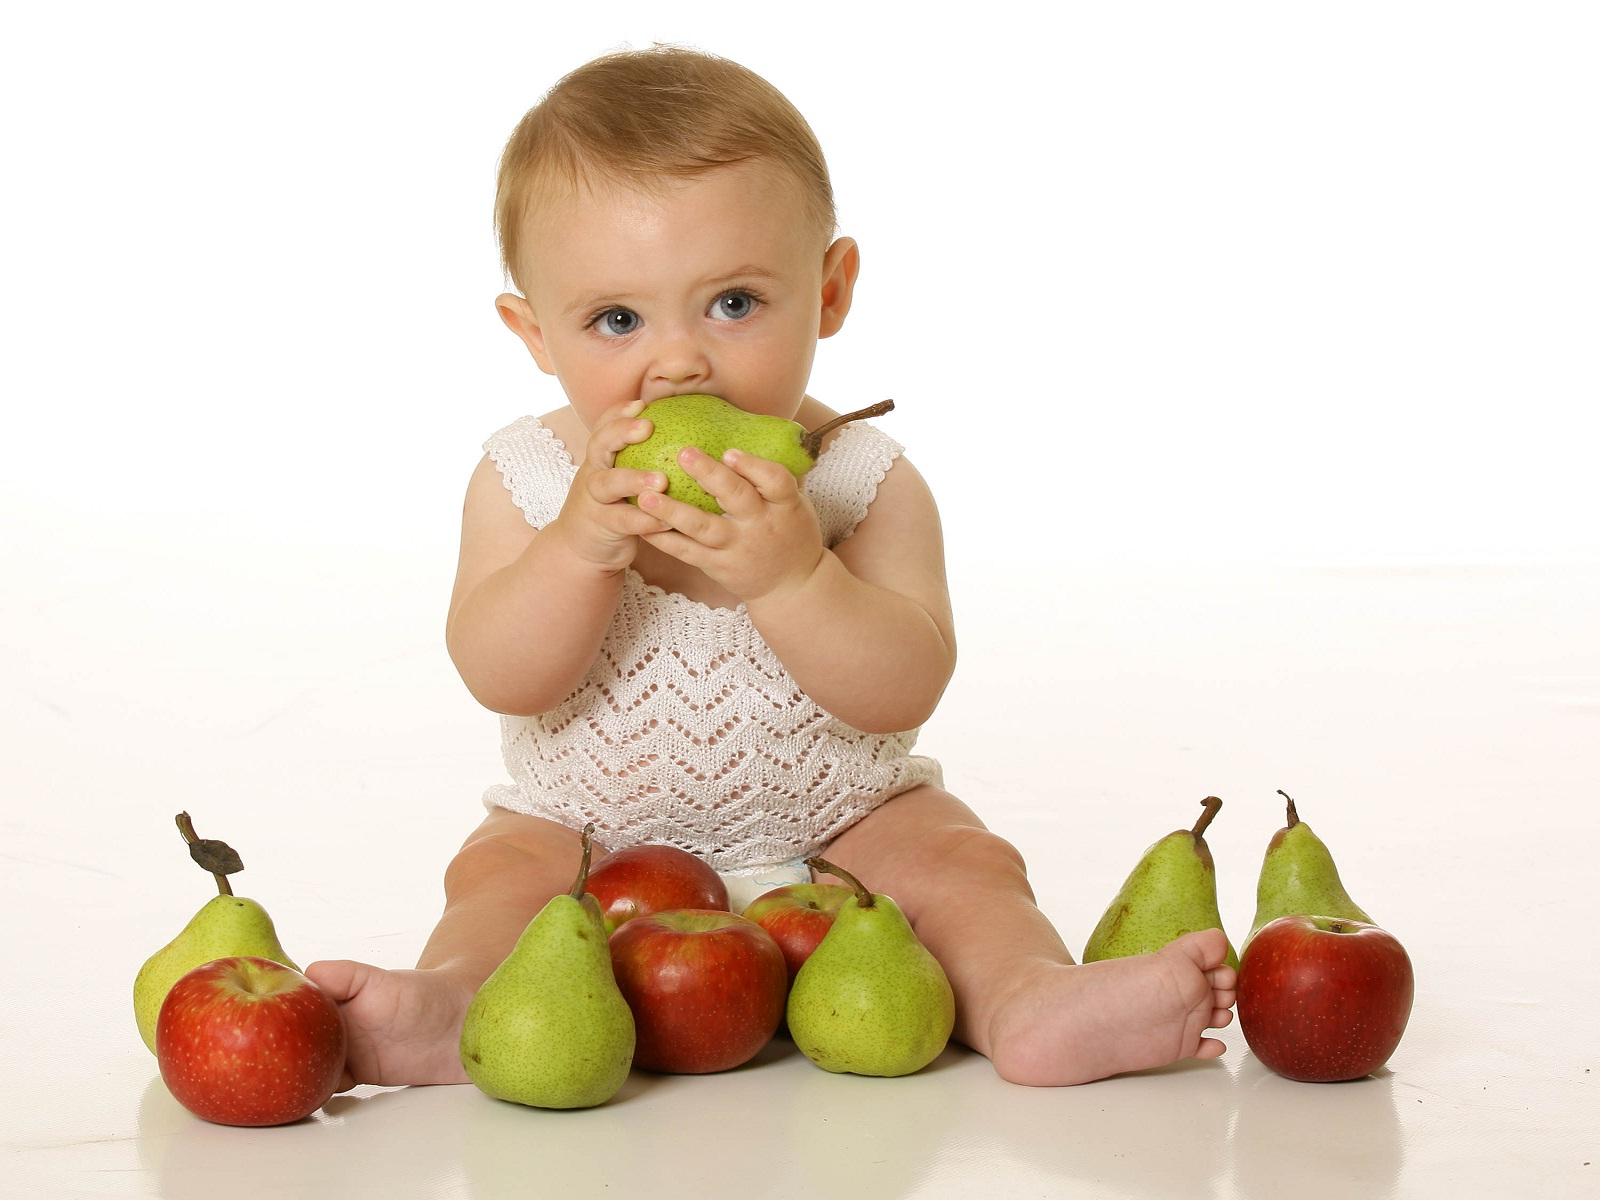 Cute baby eating fruits